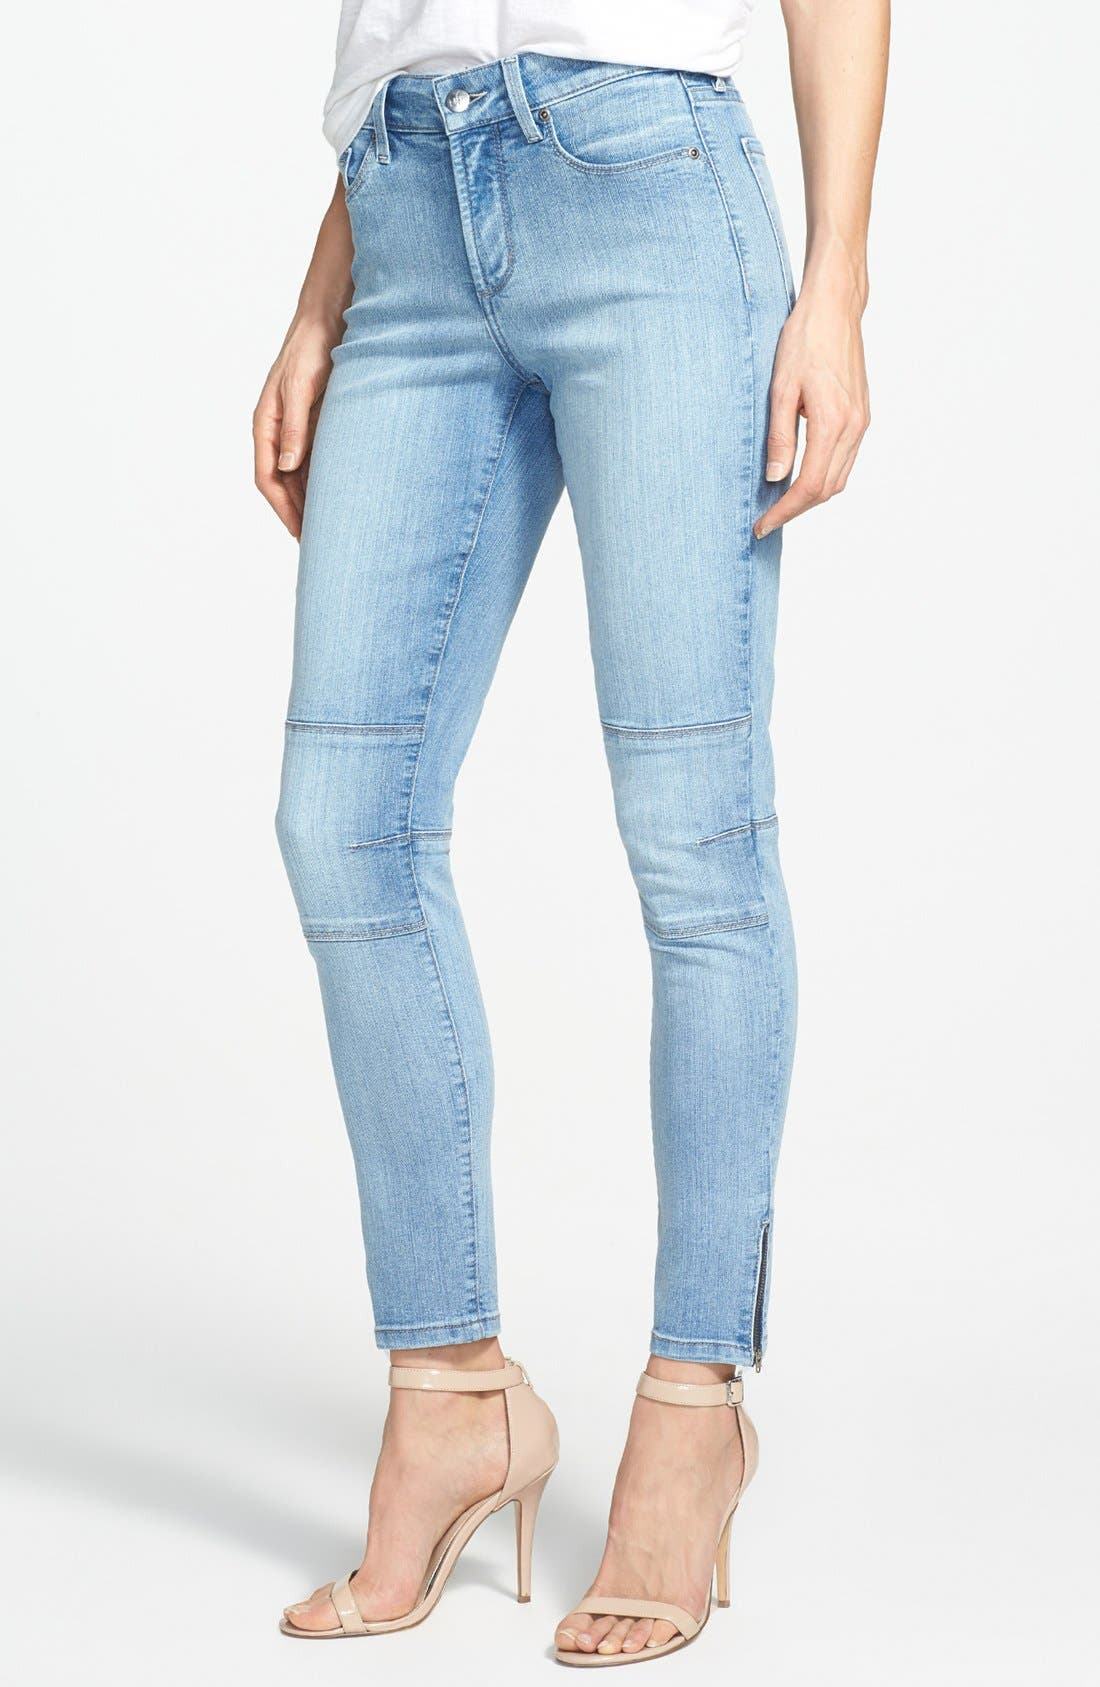 Alternate Image 1 Selected - NYDJ 'Kerry' Stretch Ankle Super Skinny Jeans (Palos Verdes) (Regular & Petite)